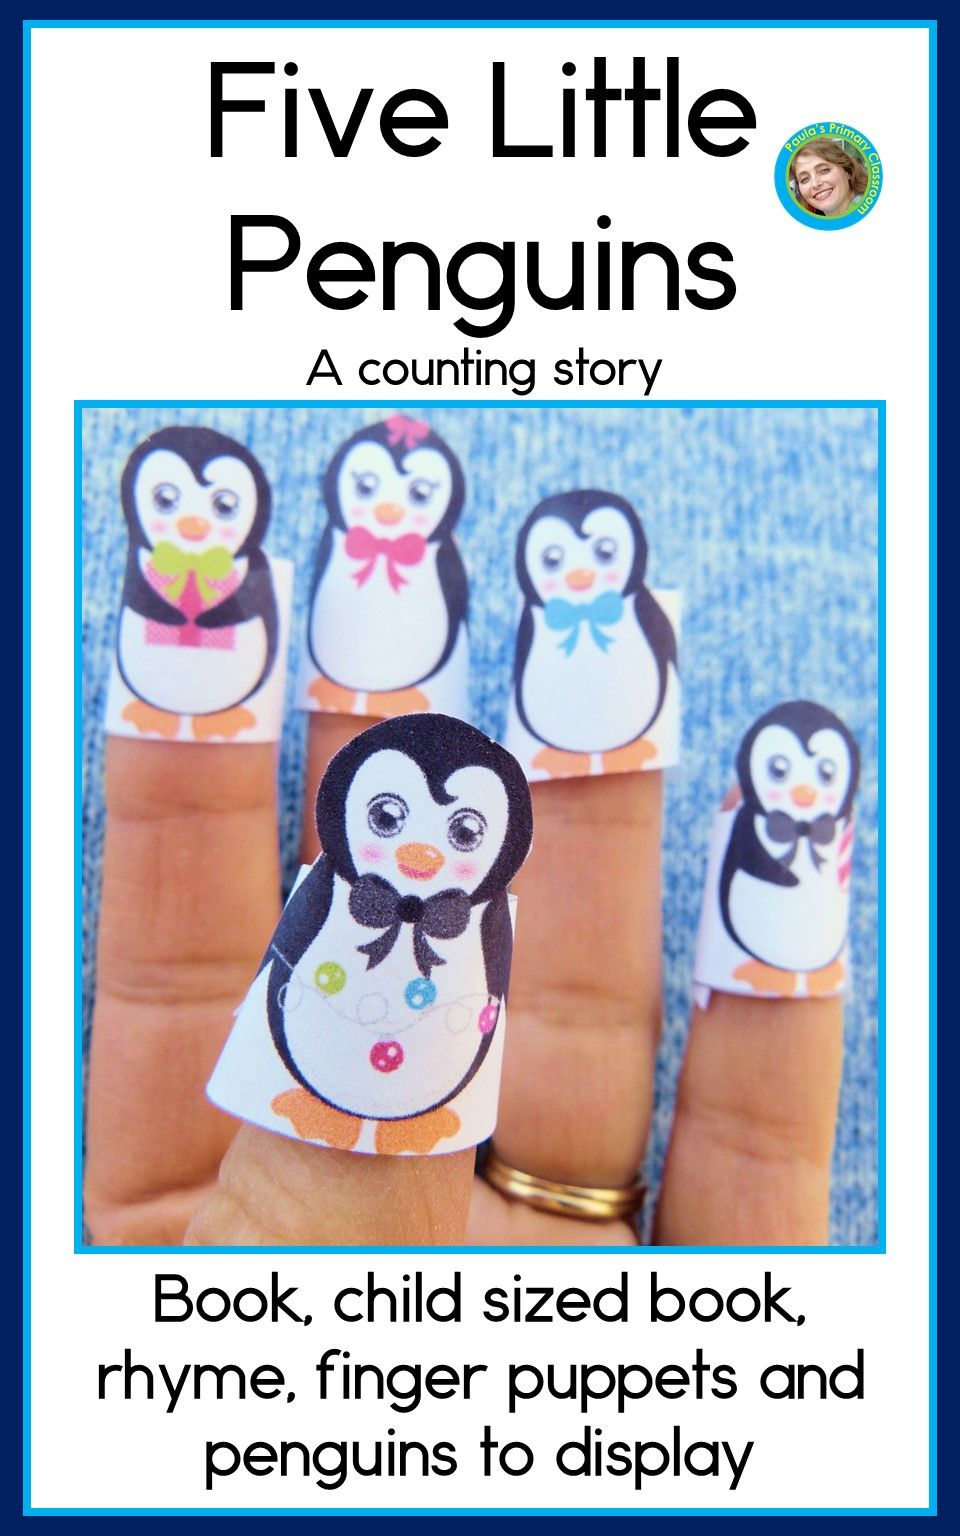 Five Little Penguins A Counting Story